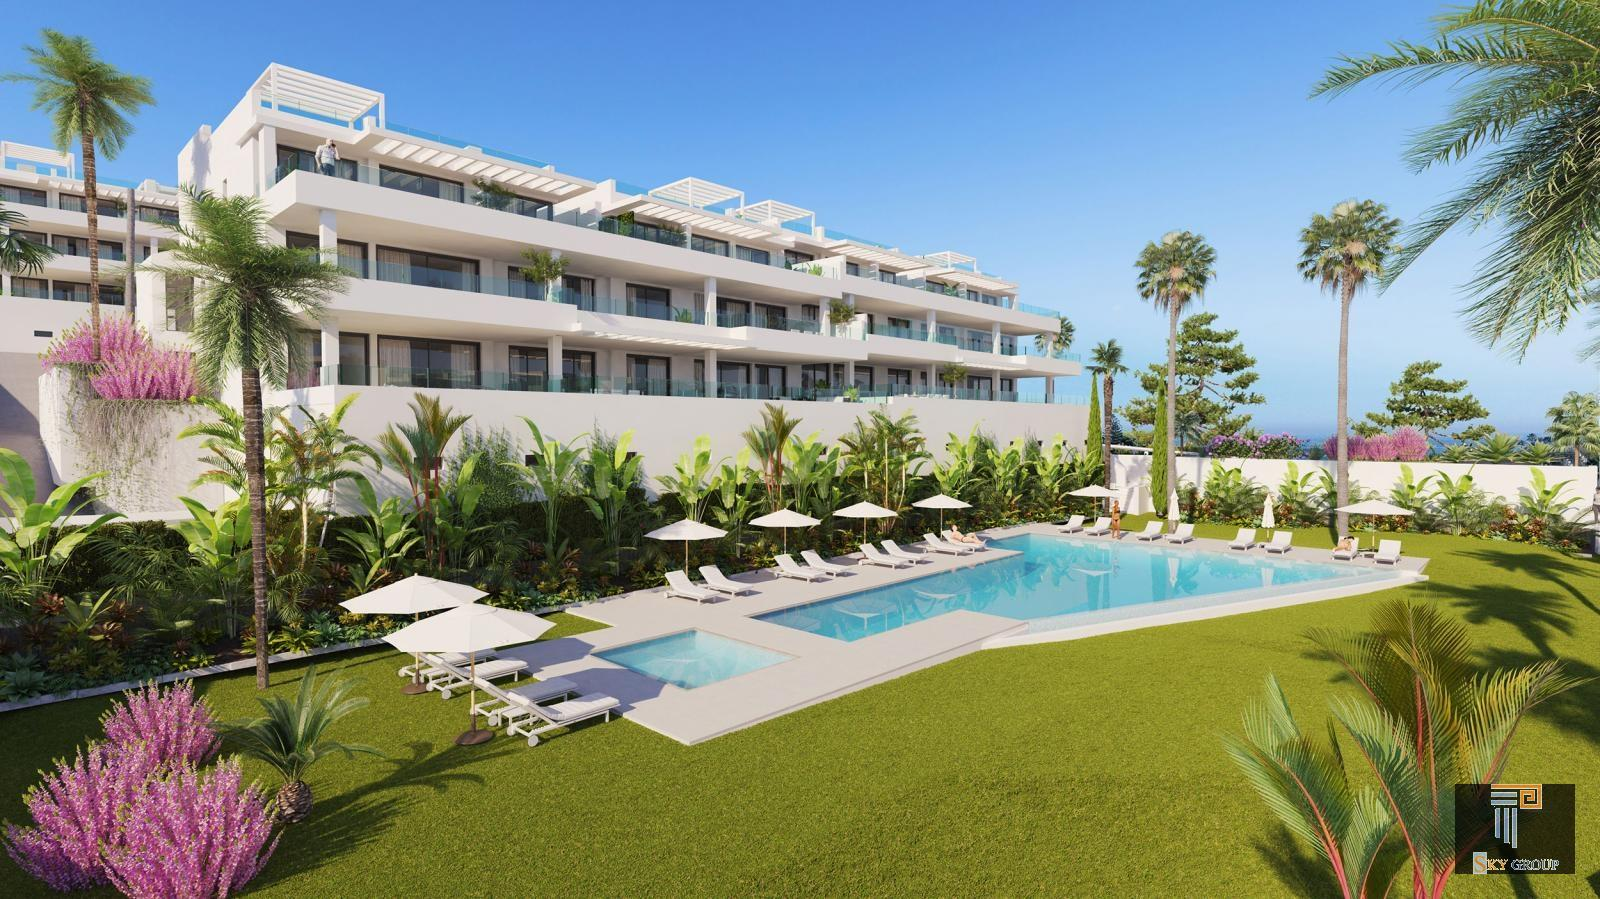 Luxury Apartment for sale in Estepona, 272.200 €